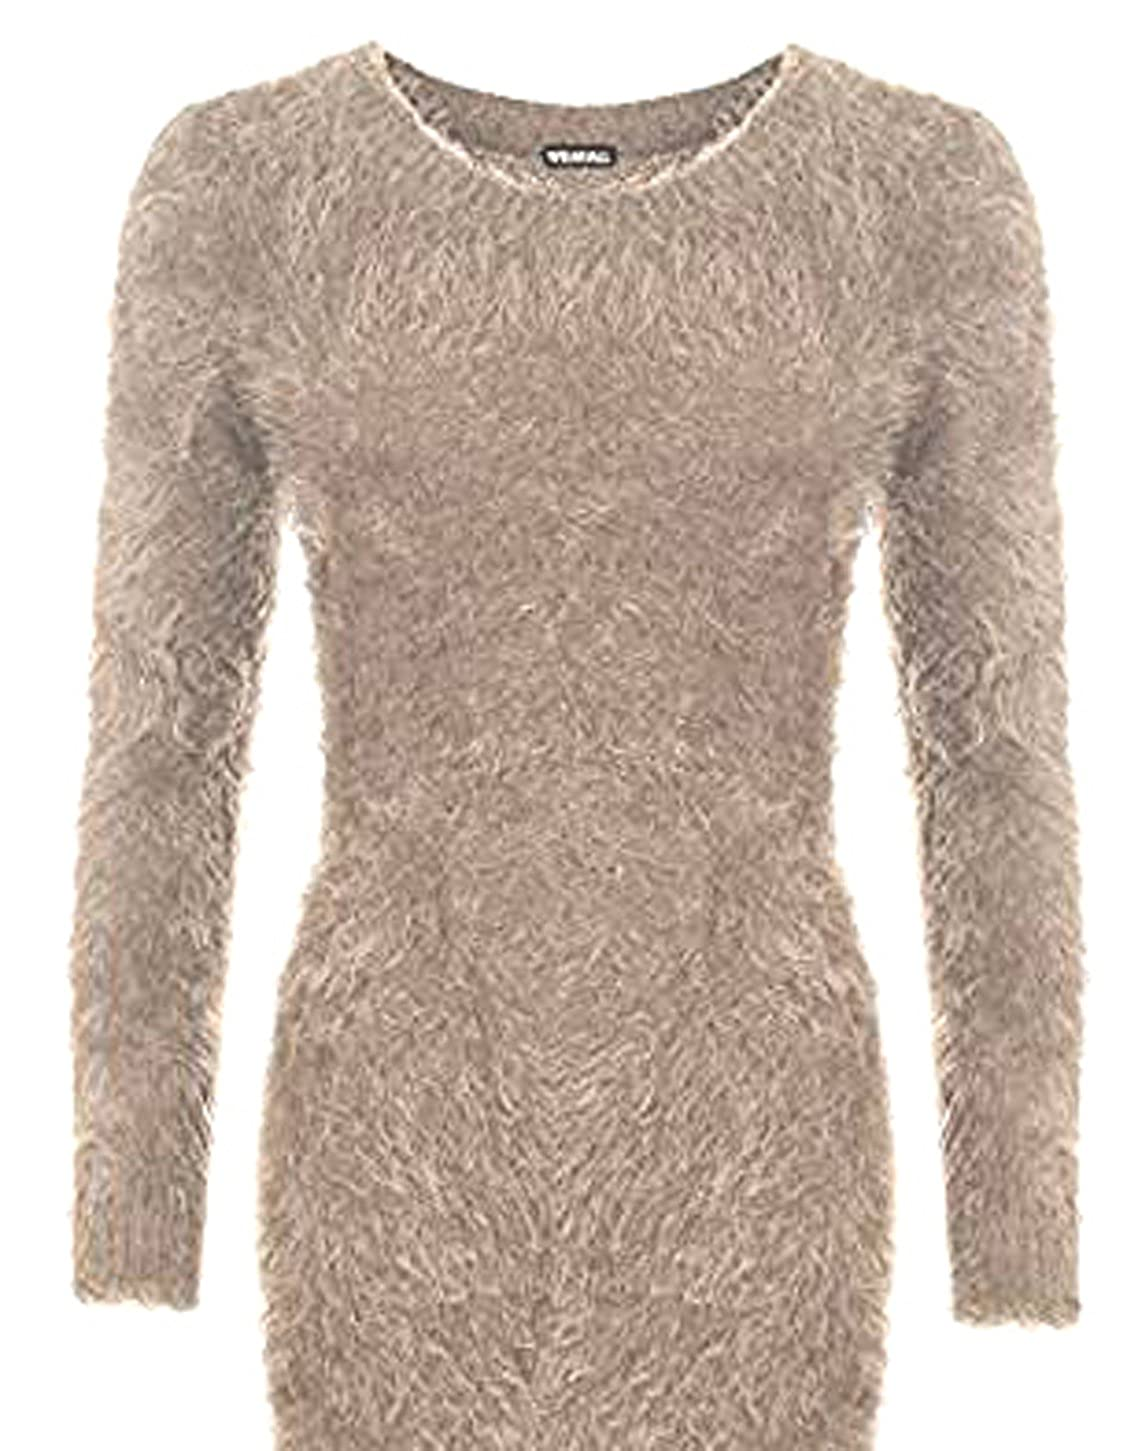 Womens Girls Stretch Bodycon Round Neck Fluffy Long Sleeve Top Sweater Ladies Jumper Free Size 8-16